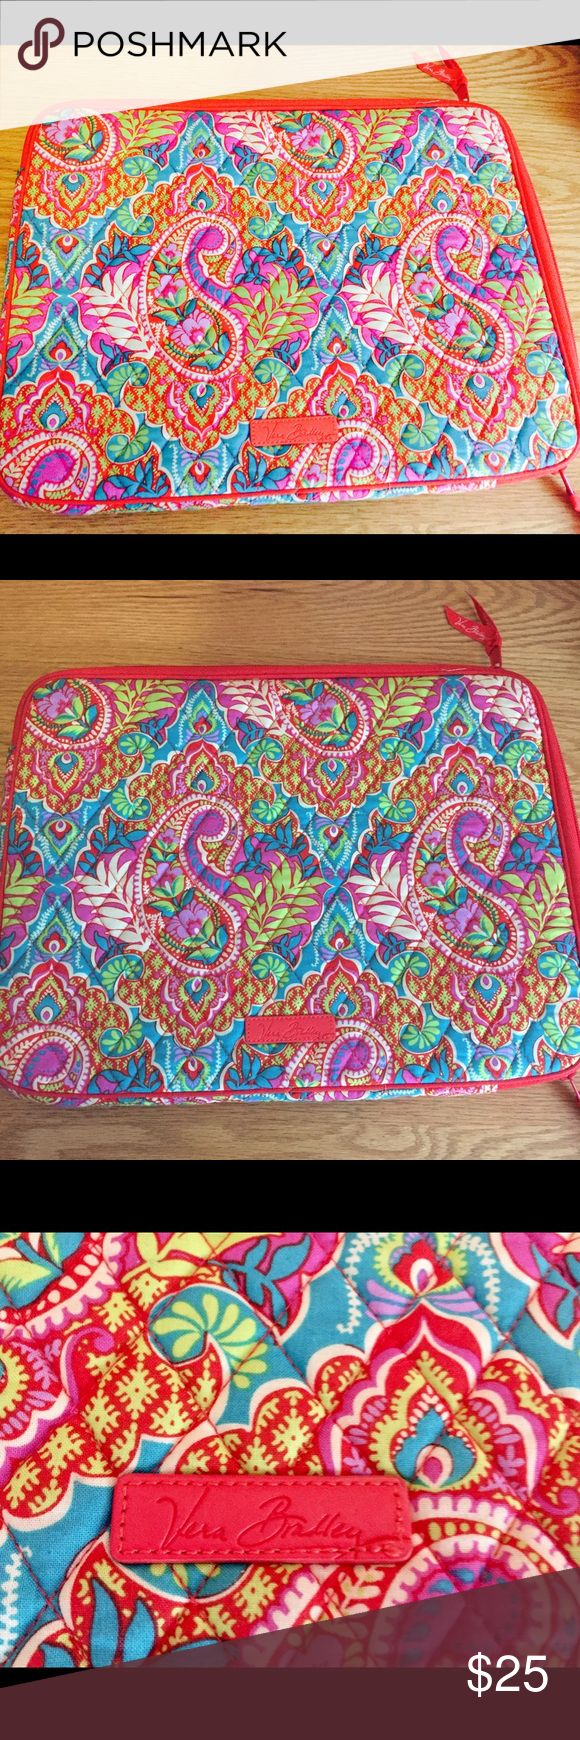 Large Vera Bradley Laptop Case Large Vera Bradley laptop case in perfect condition! Dimensions are 14 x 10 3/4 Vera Bradley Bags Laptop Bags